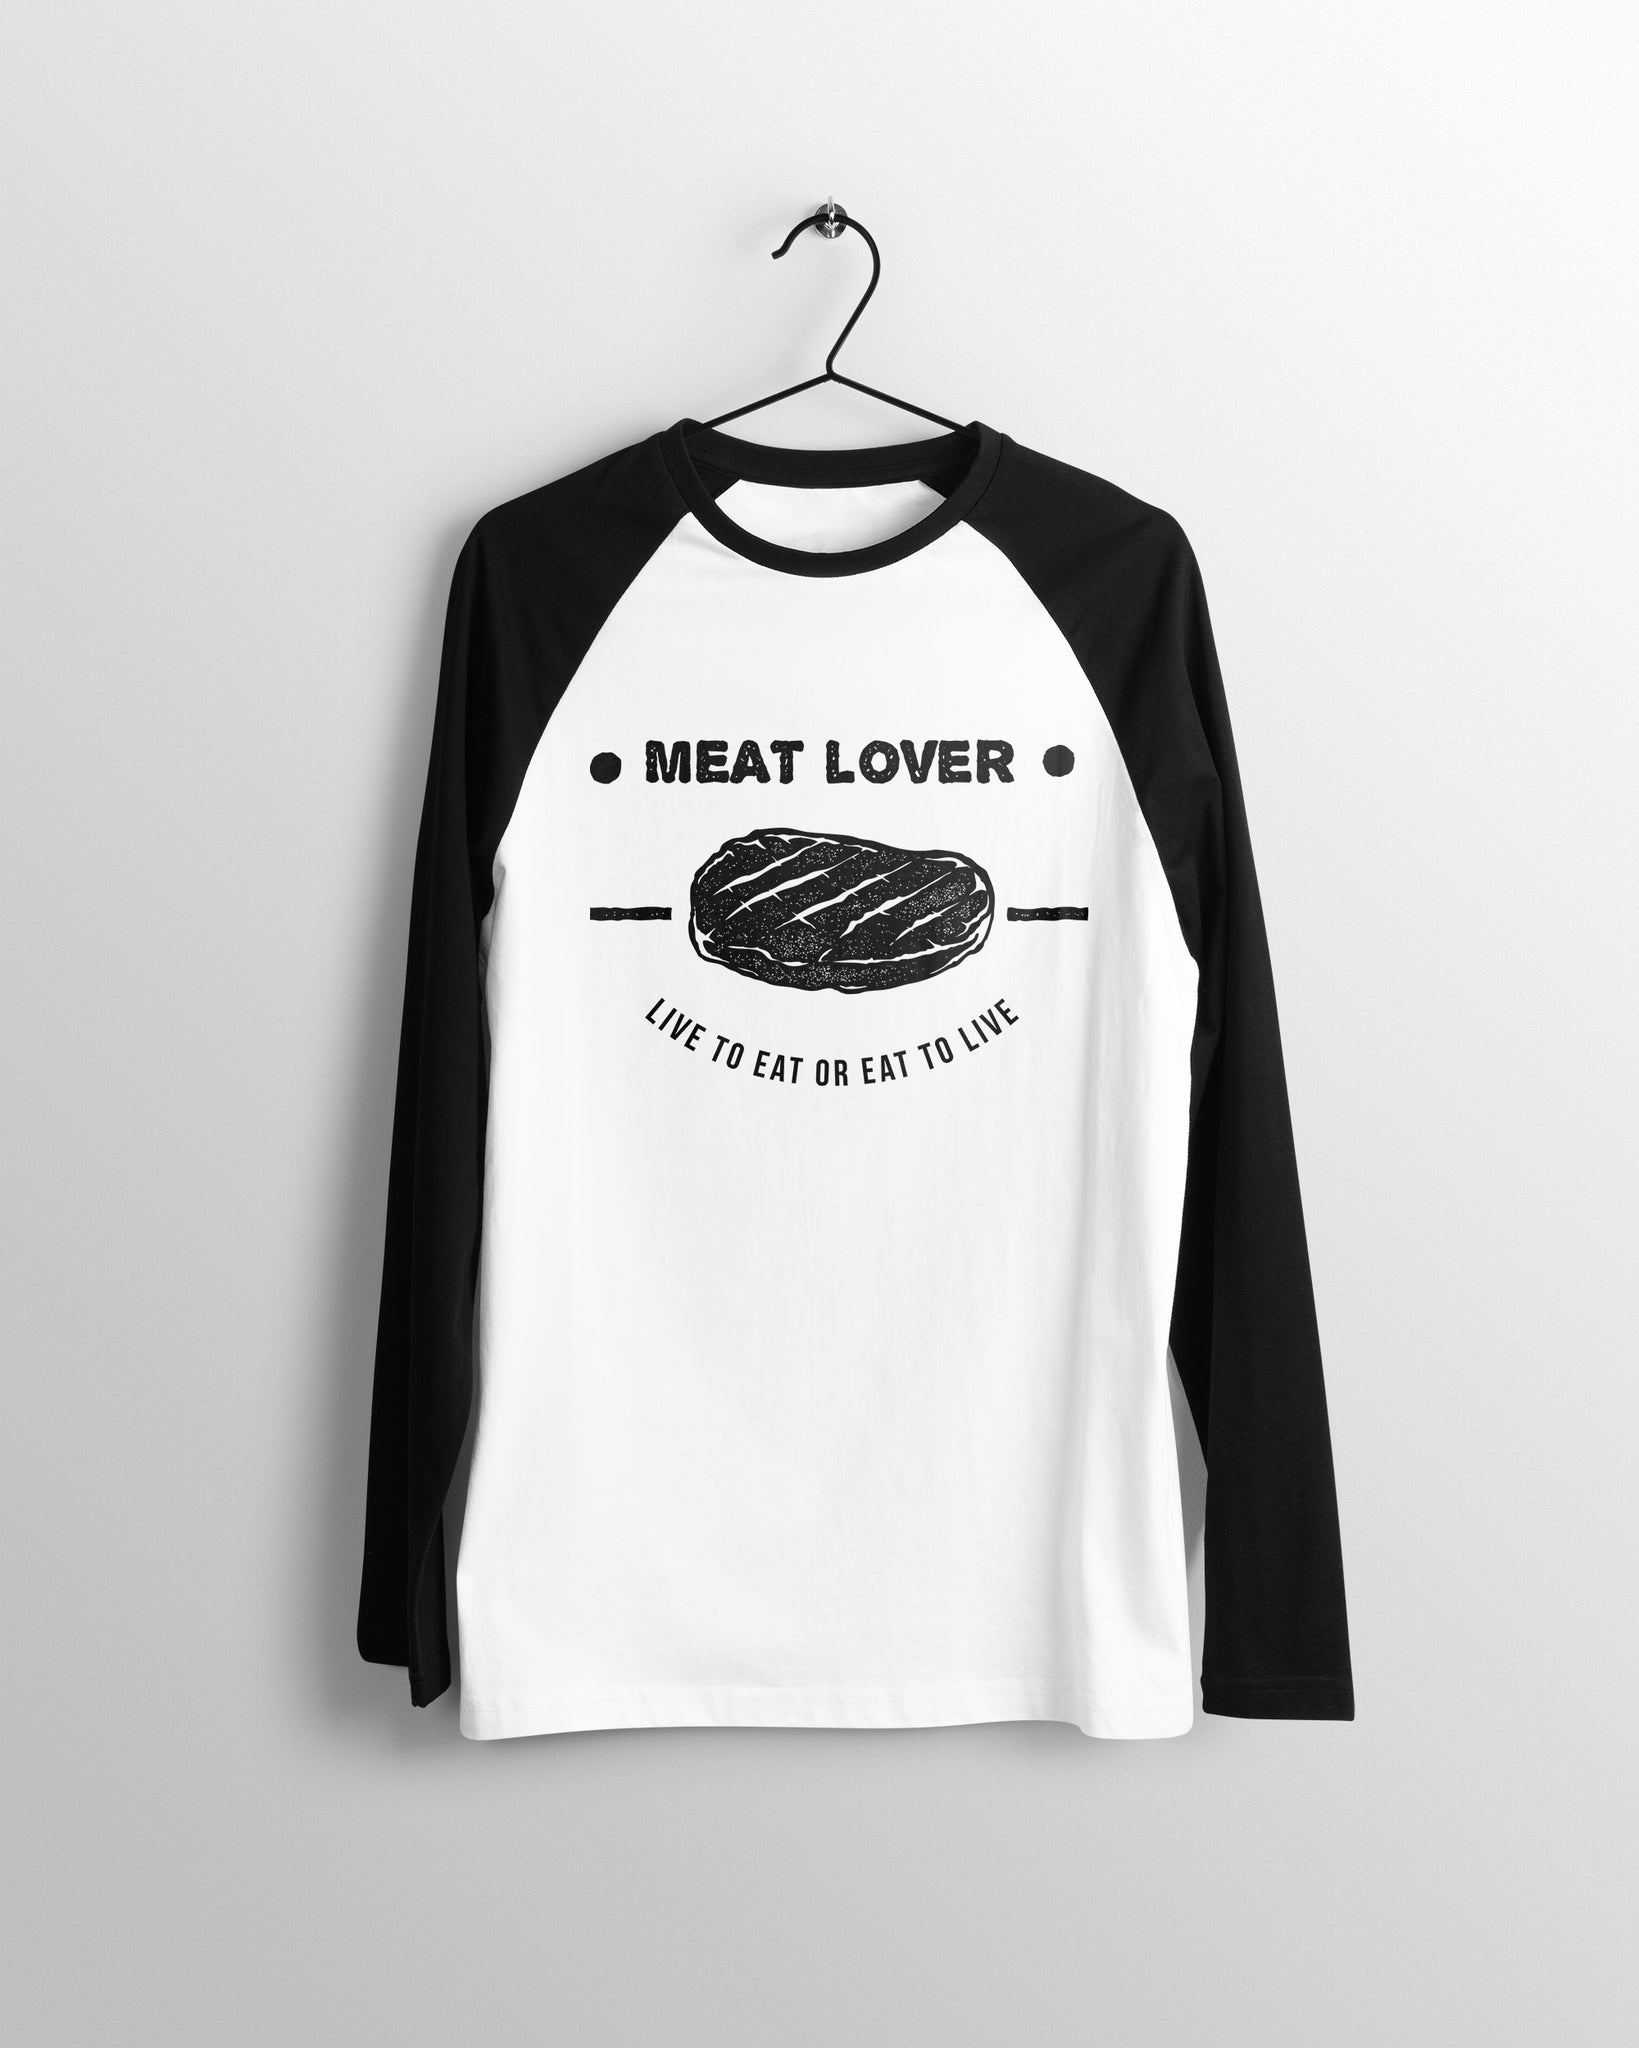 MEAT LOVER